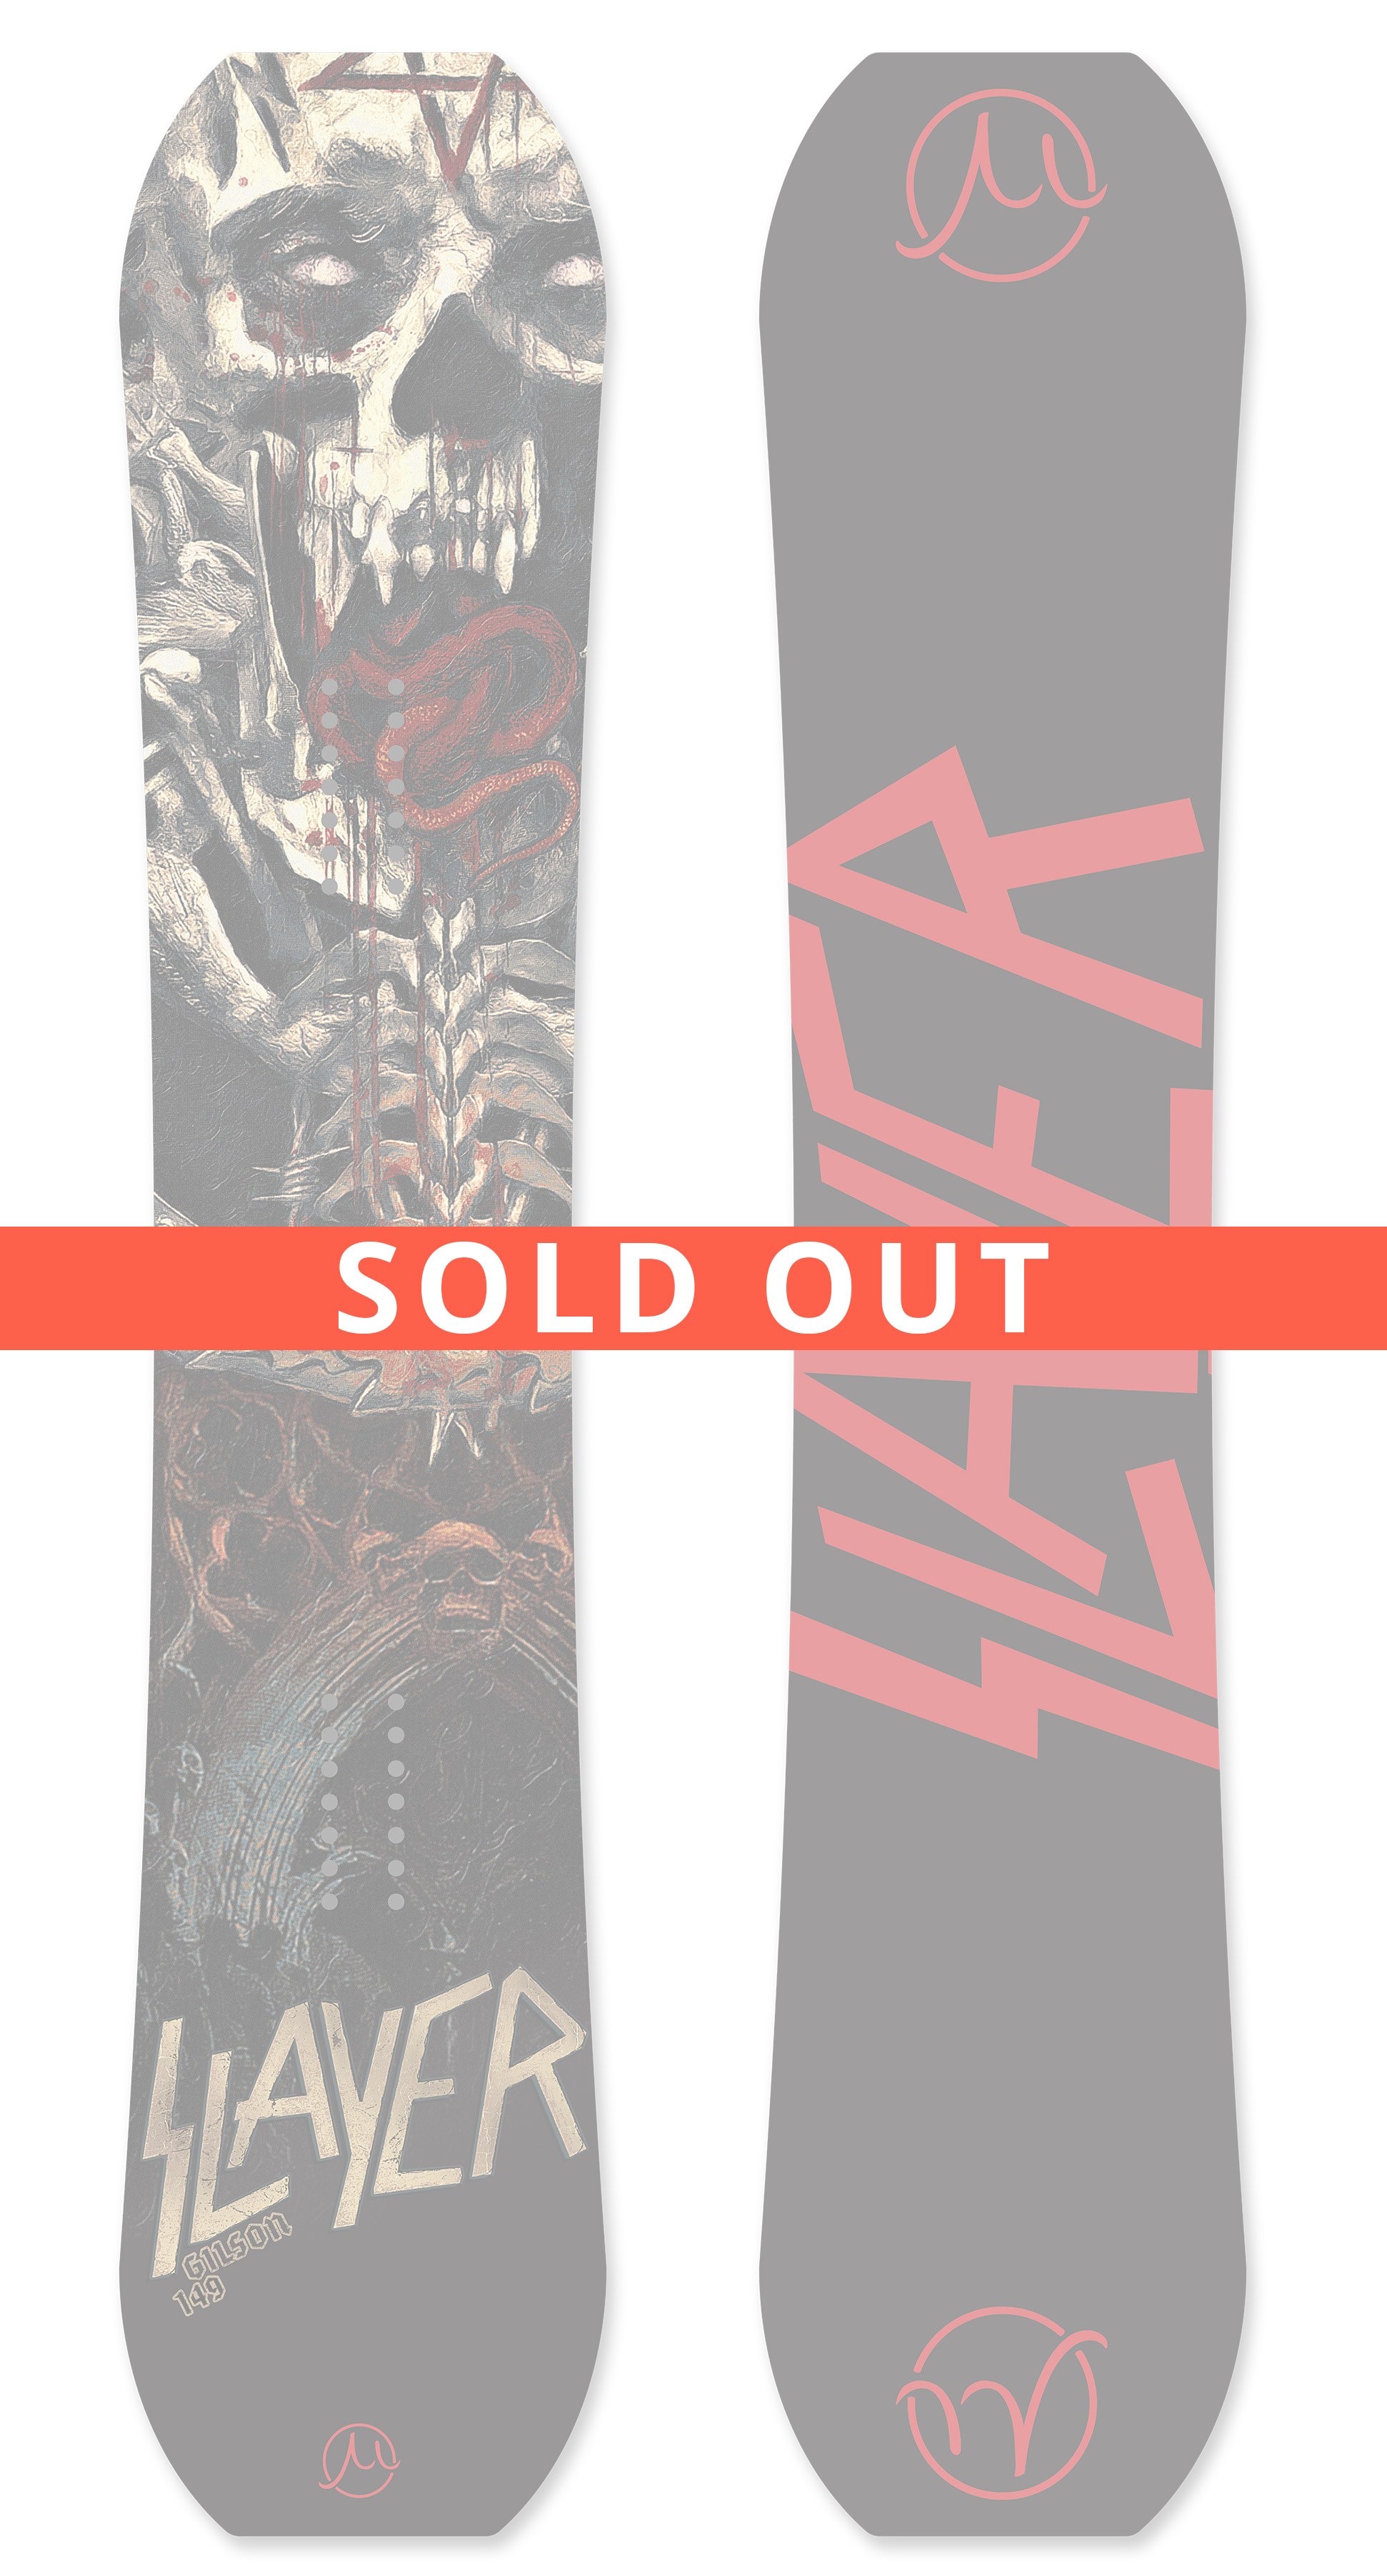 Slayer demonic sold out large